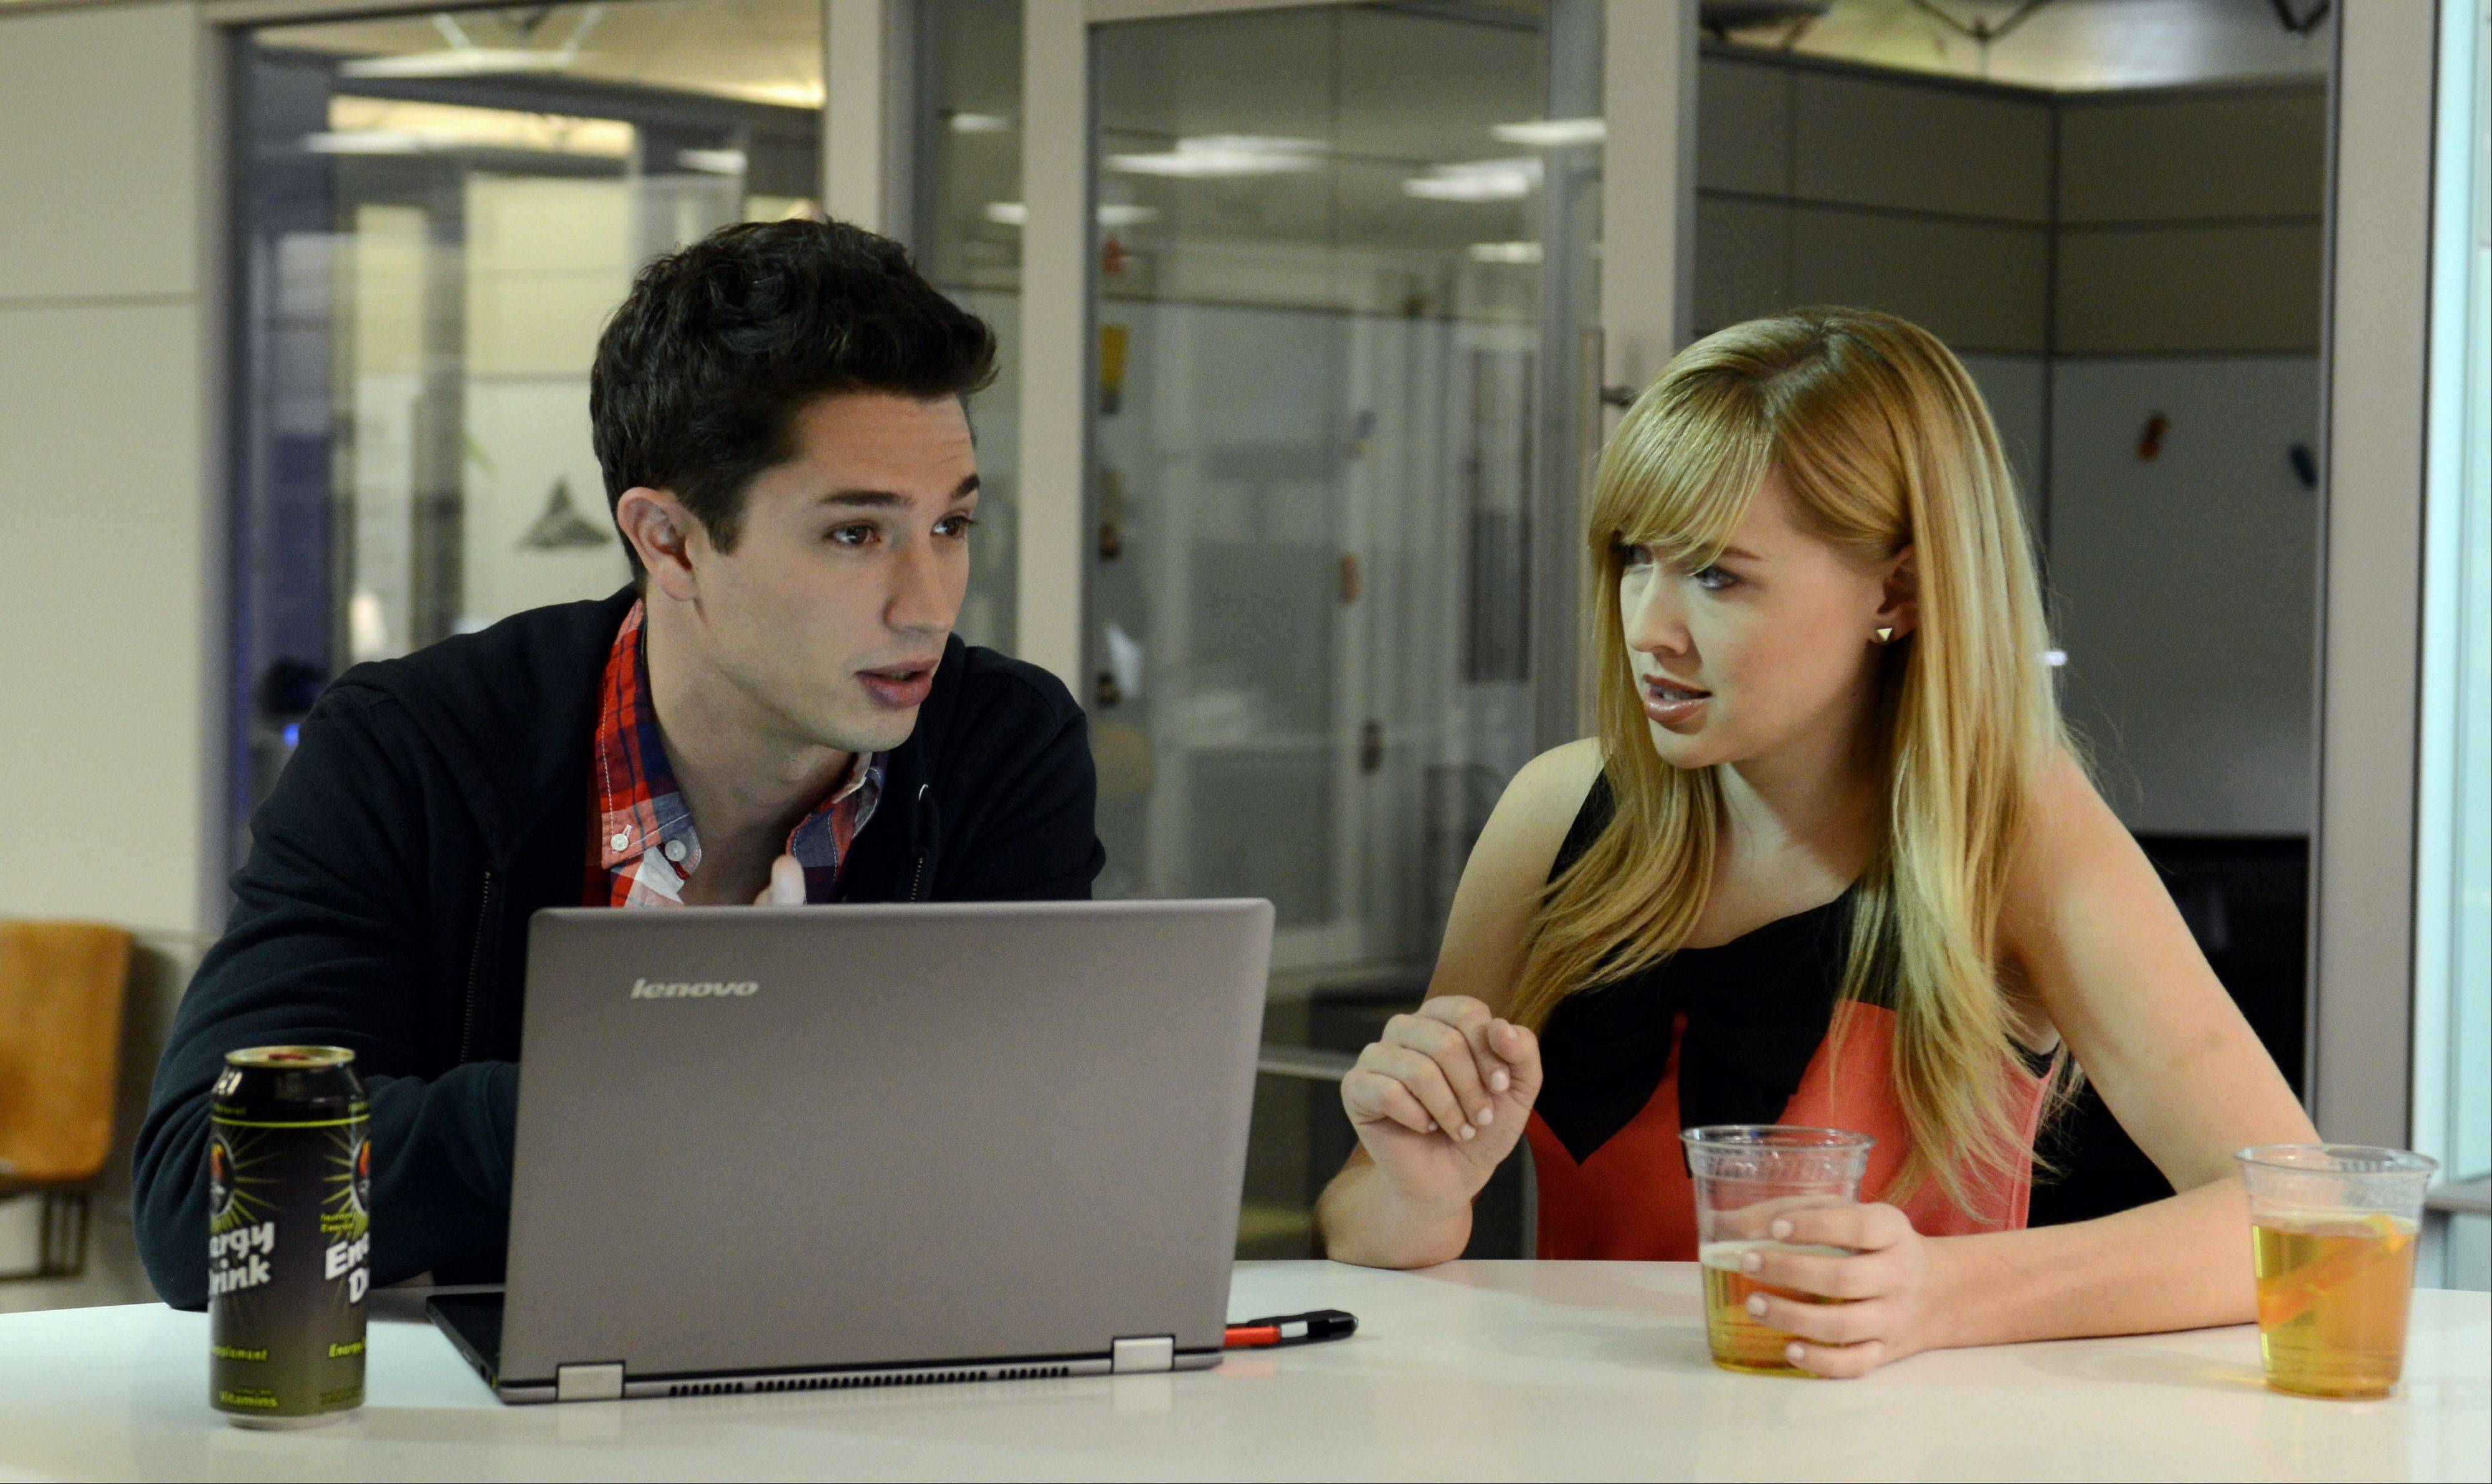 This undated image provided by Amazon shows actors Joe Dinicol, left, and Sarah Stouffer act out a scene from an episode of �Betas,� one of 14 TV show pilots being made by Amazon.com Inc. Amazon is hoping people will sign up to pay $79 a year for an Amazon Prime membership, a free shipping, online video and e-book borrowing service that will include access to the full series on the Web, connected TVs and mobile devices when they're completed.